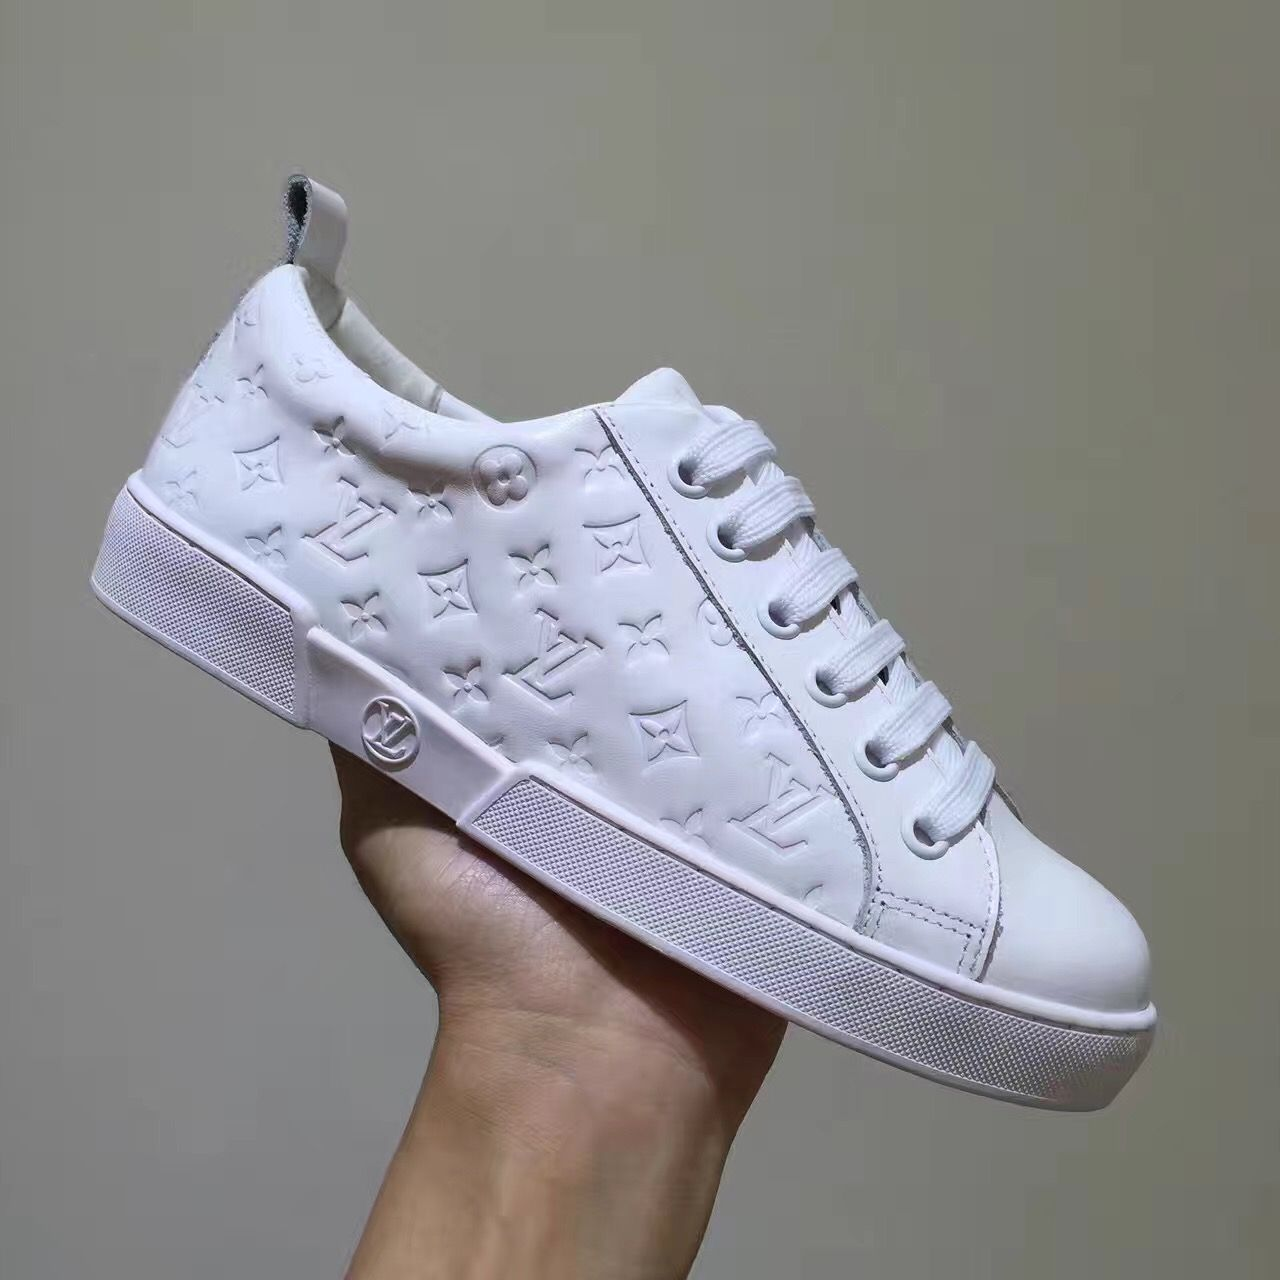 d20da88bae3b Louis Vuitton Lv woman shoes monogram sneakers